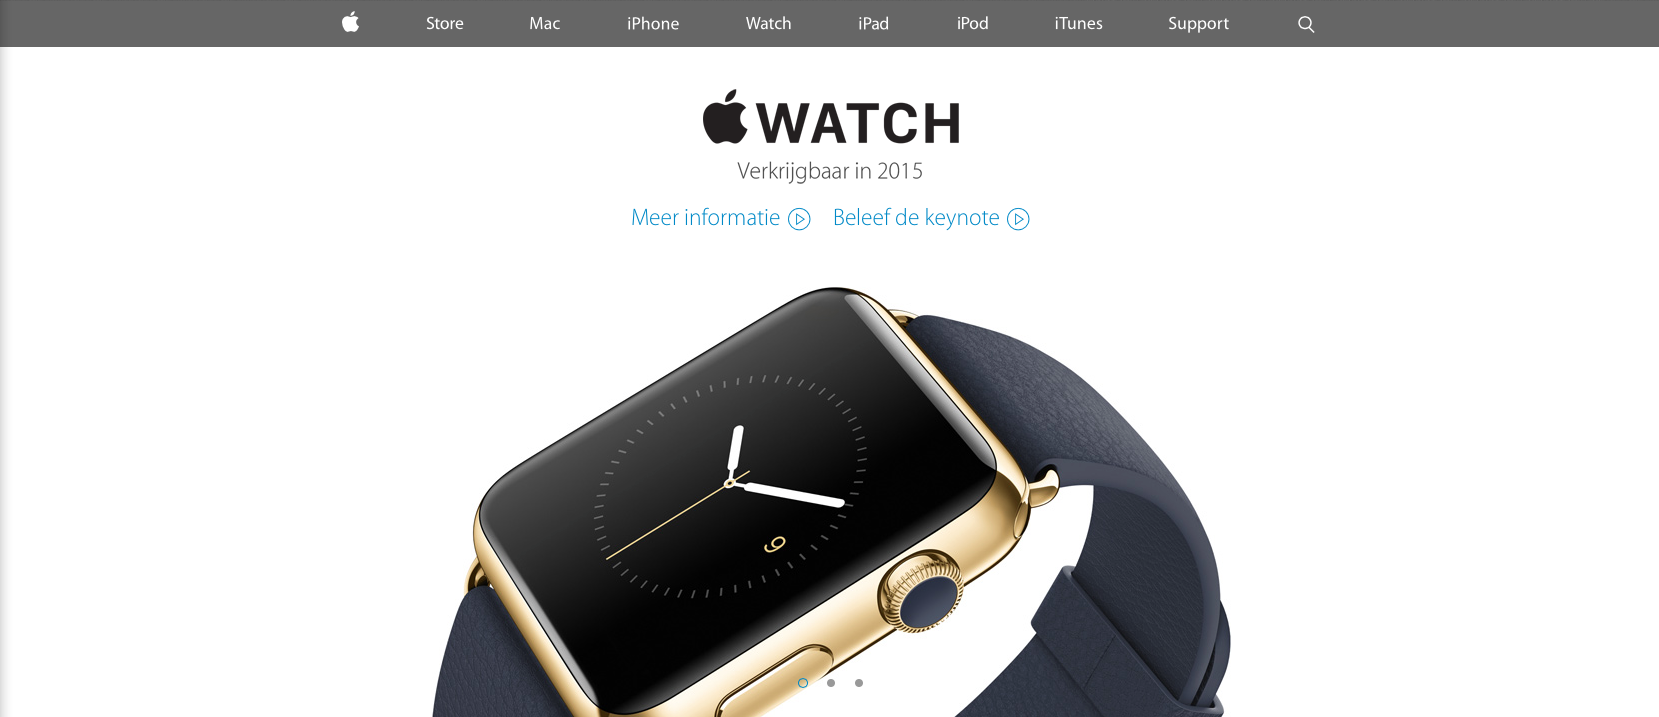 http://www.macfreak.nl/modules/news/images/zArt.AppleWatchLaunchDate-3.png